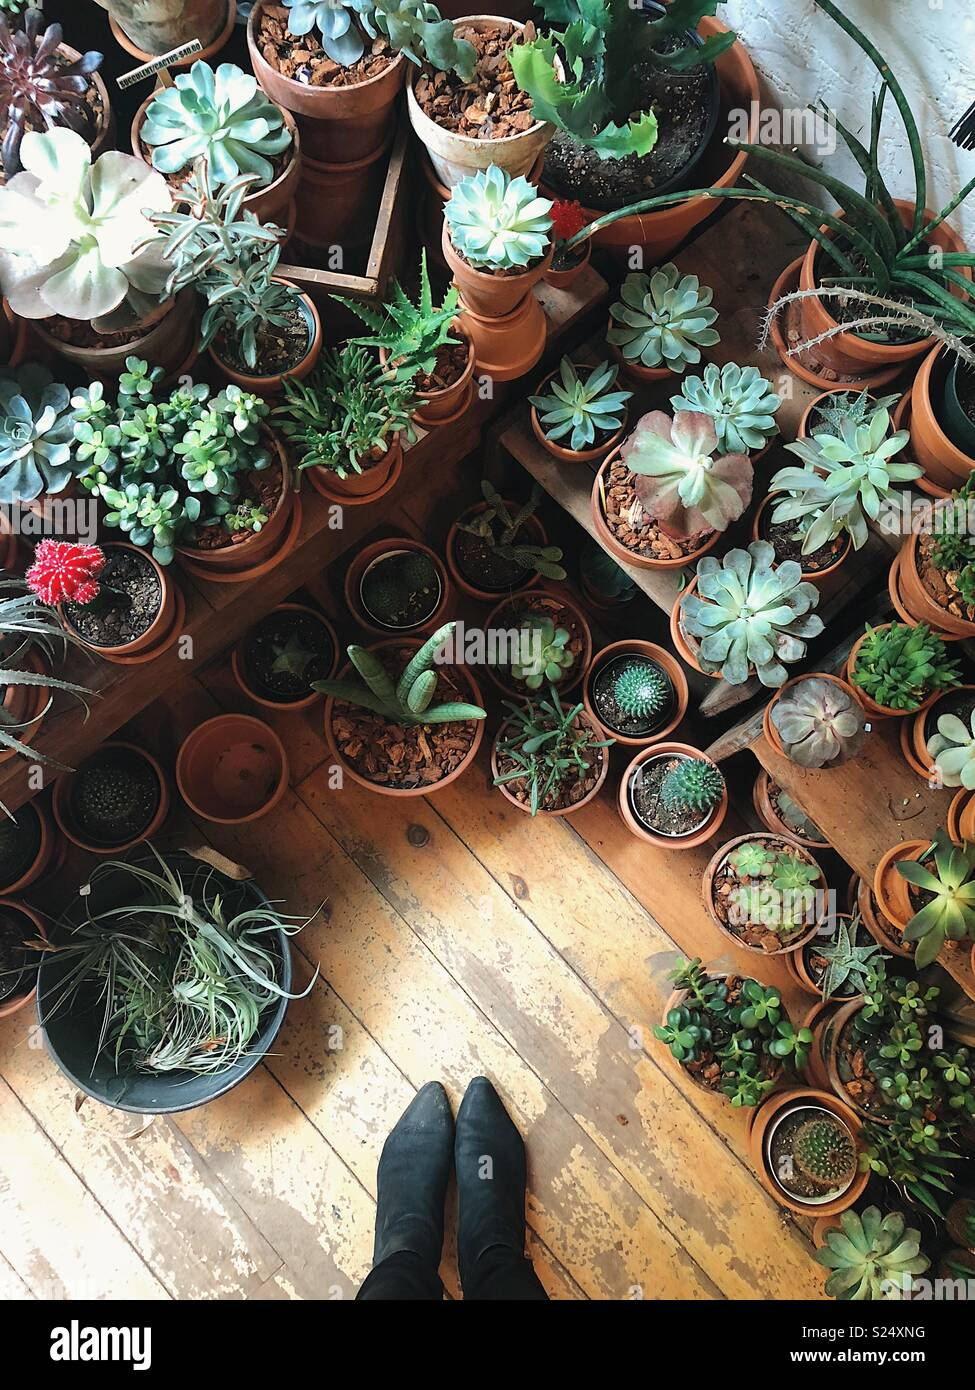 A cute plant store in SoHo - Stock Image